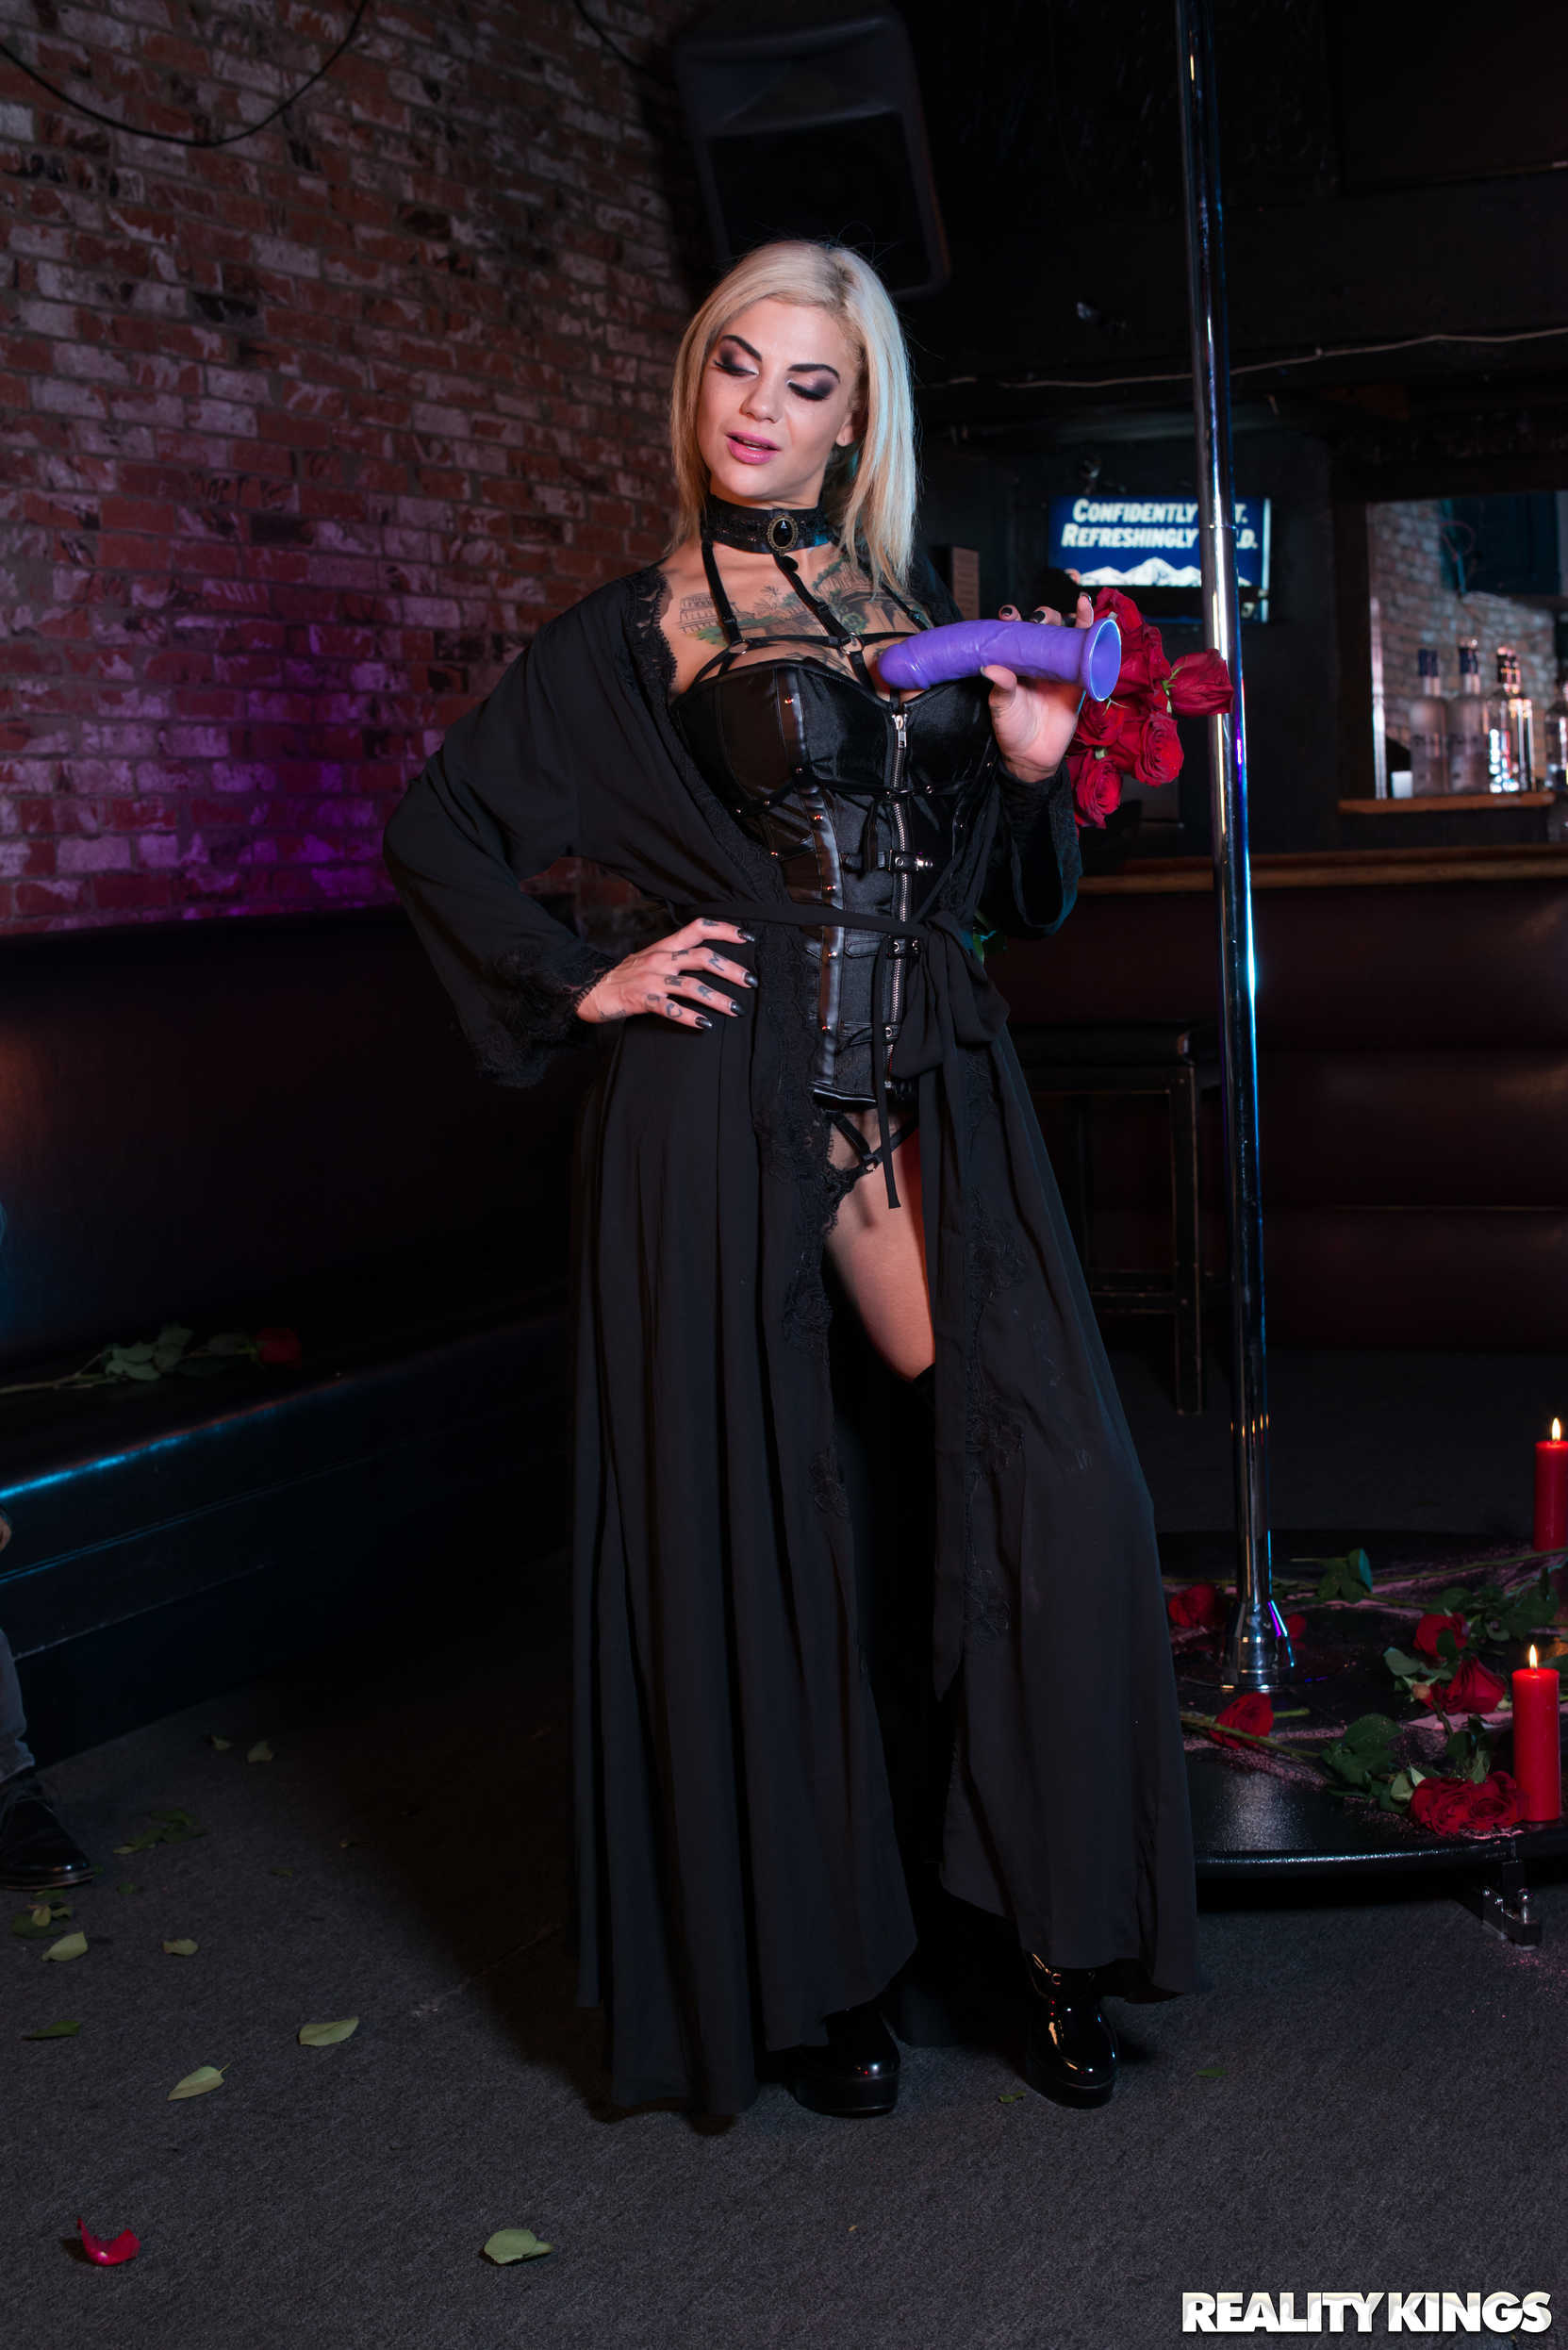 Reality Kings 'Pitch Black Pole Dancer' starring Bonnie Rotten (Photo 6)